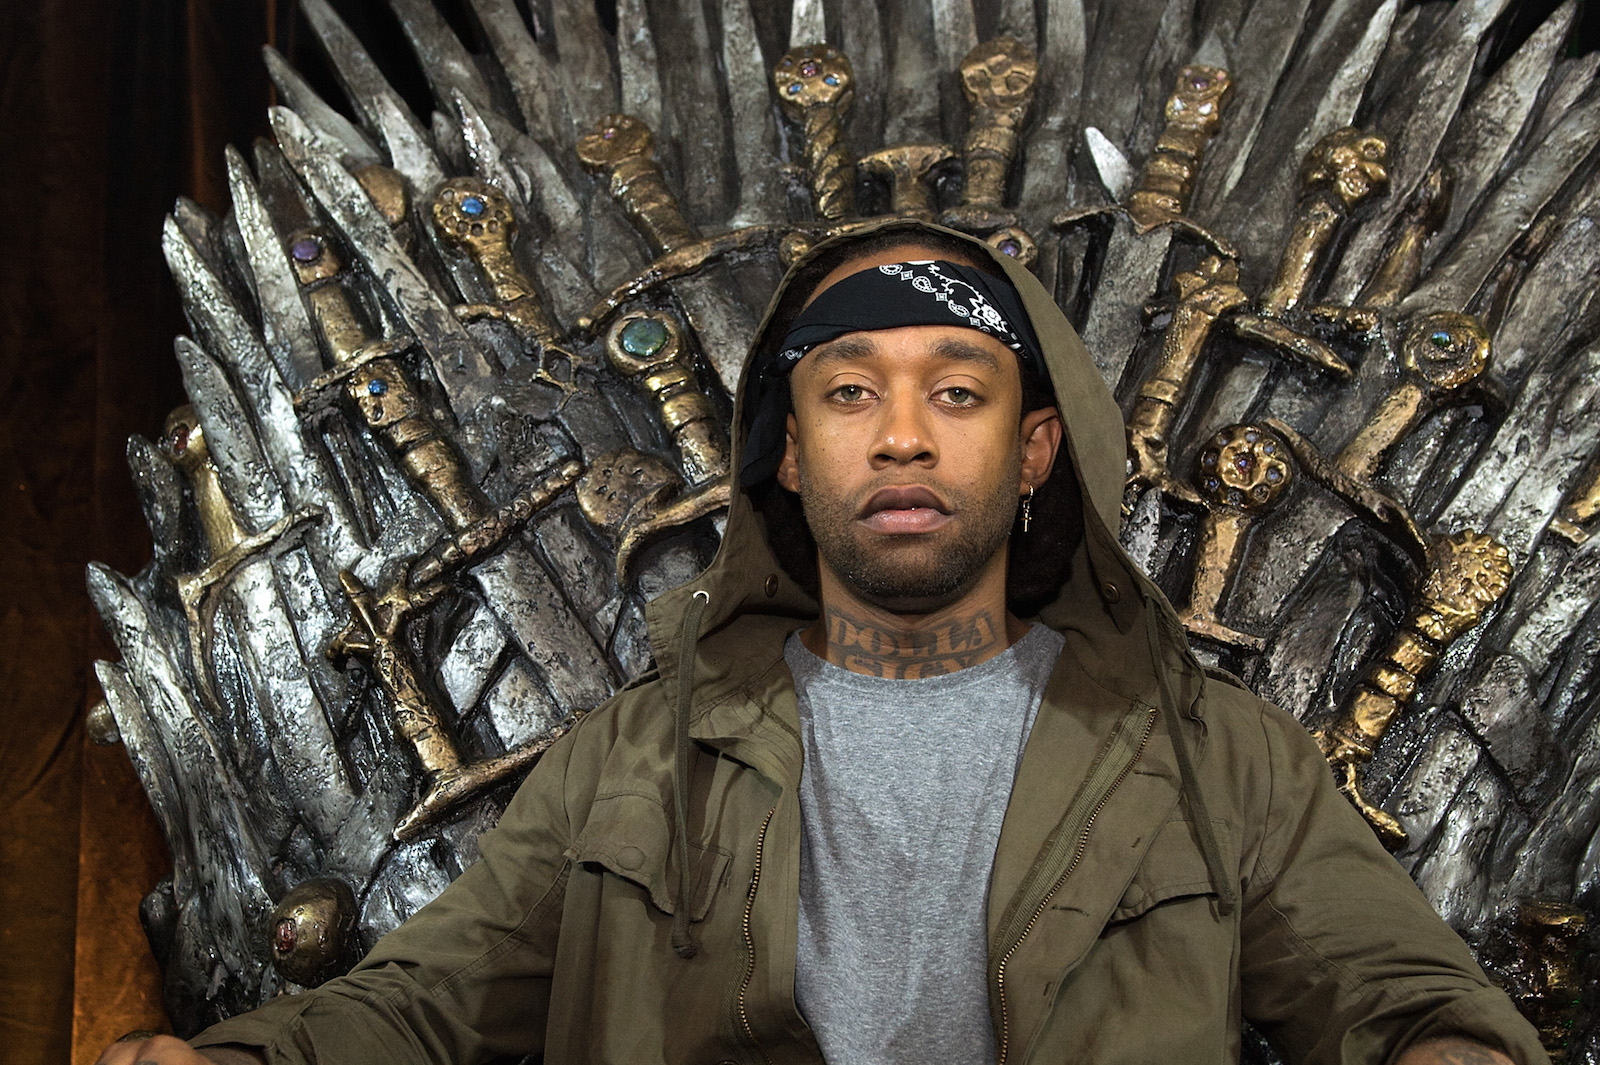 Ty dolla ign hq pictures full hd pictures - Ty dolla sign hd wallpaper ...